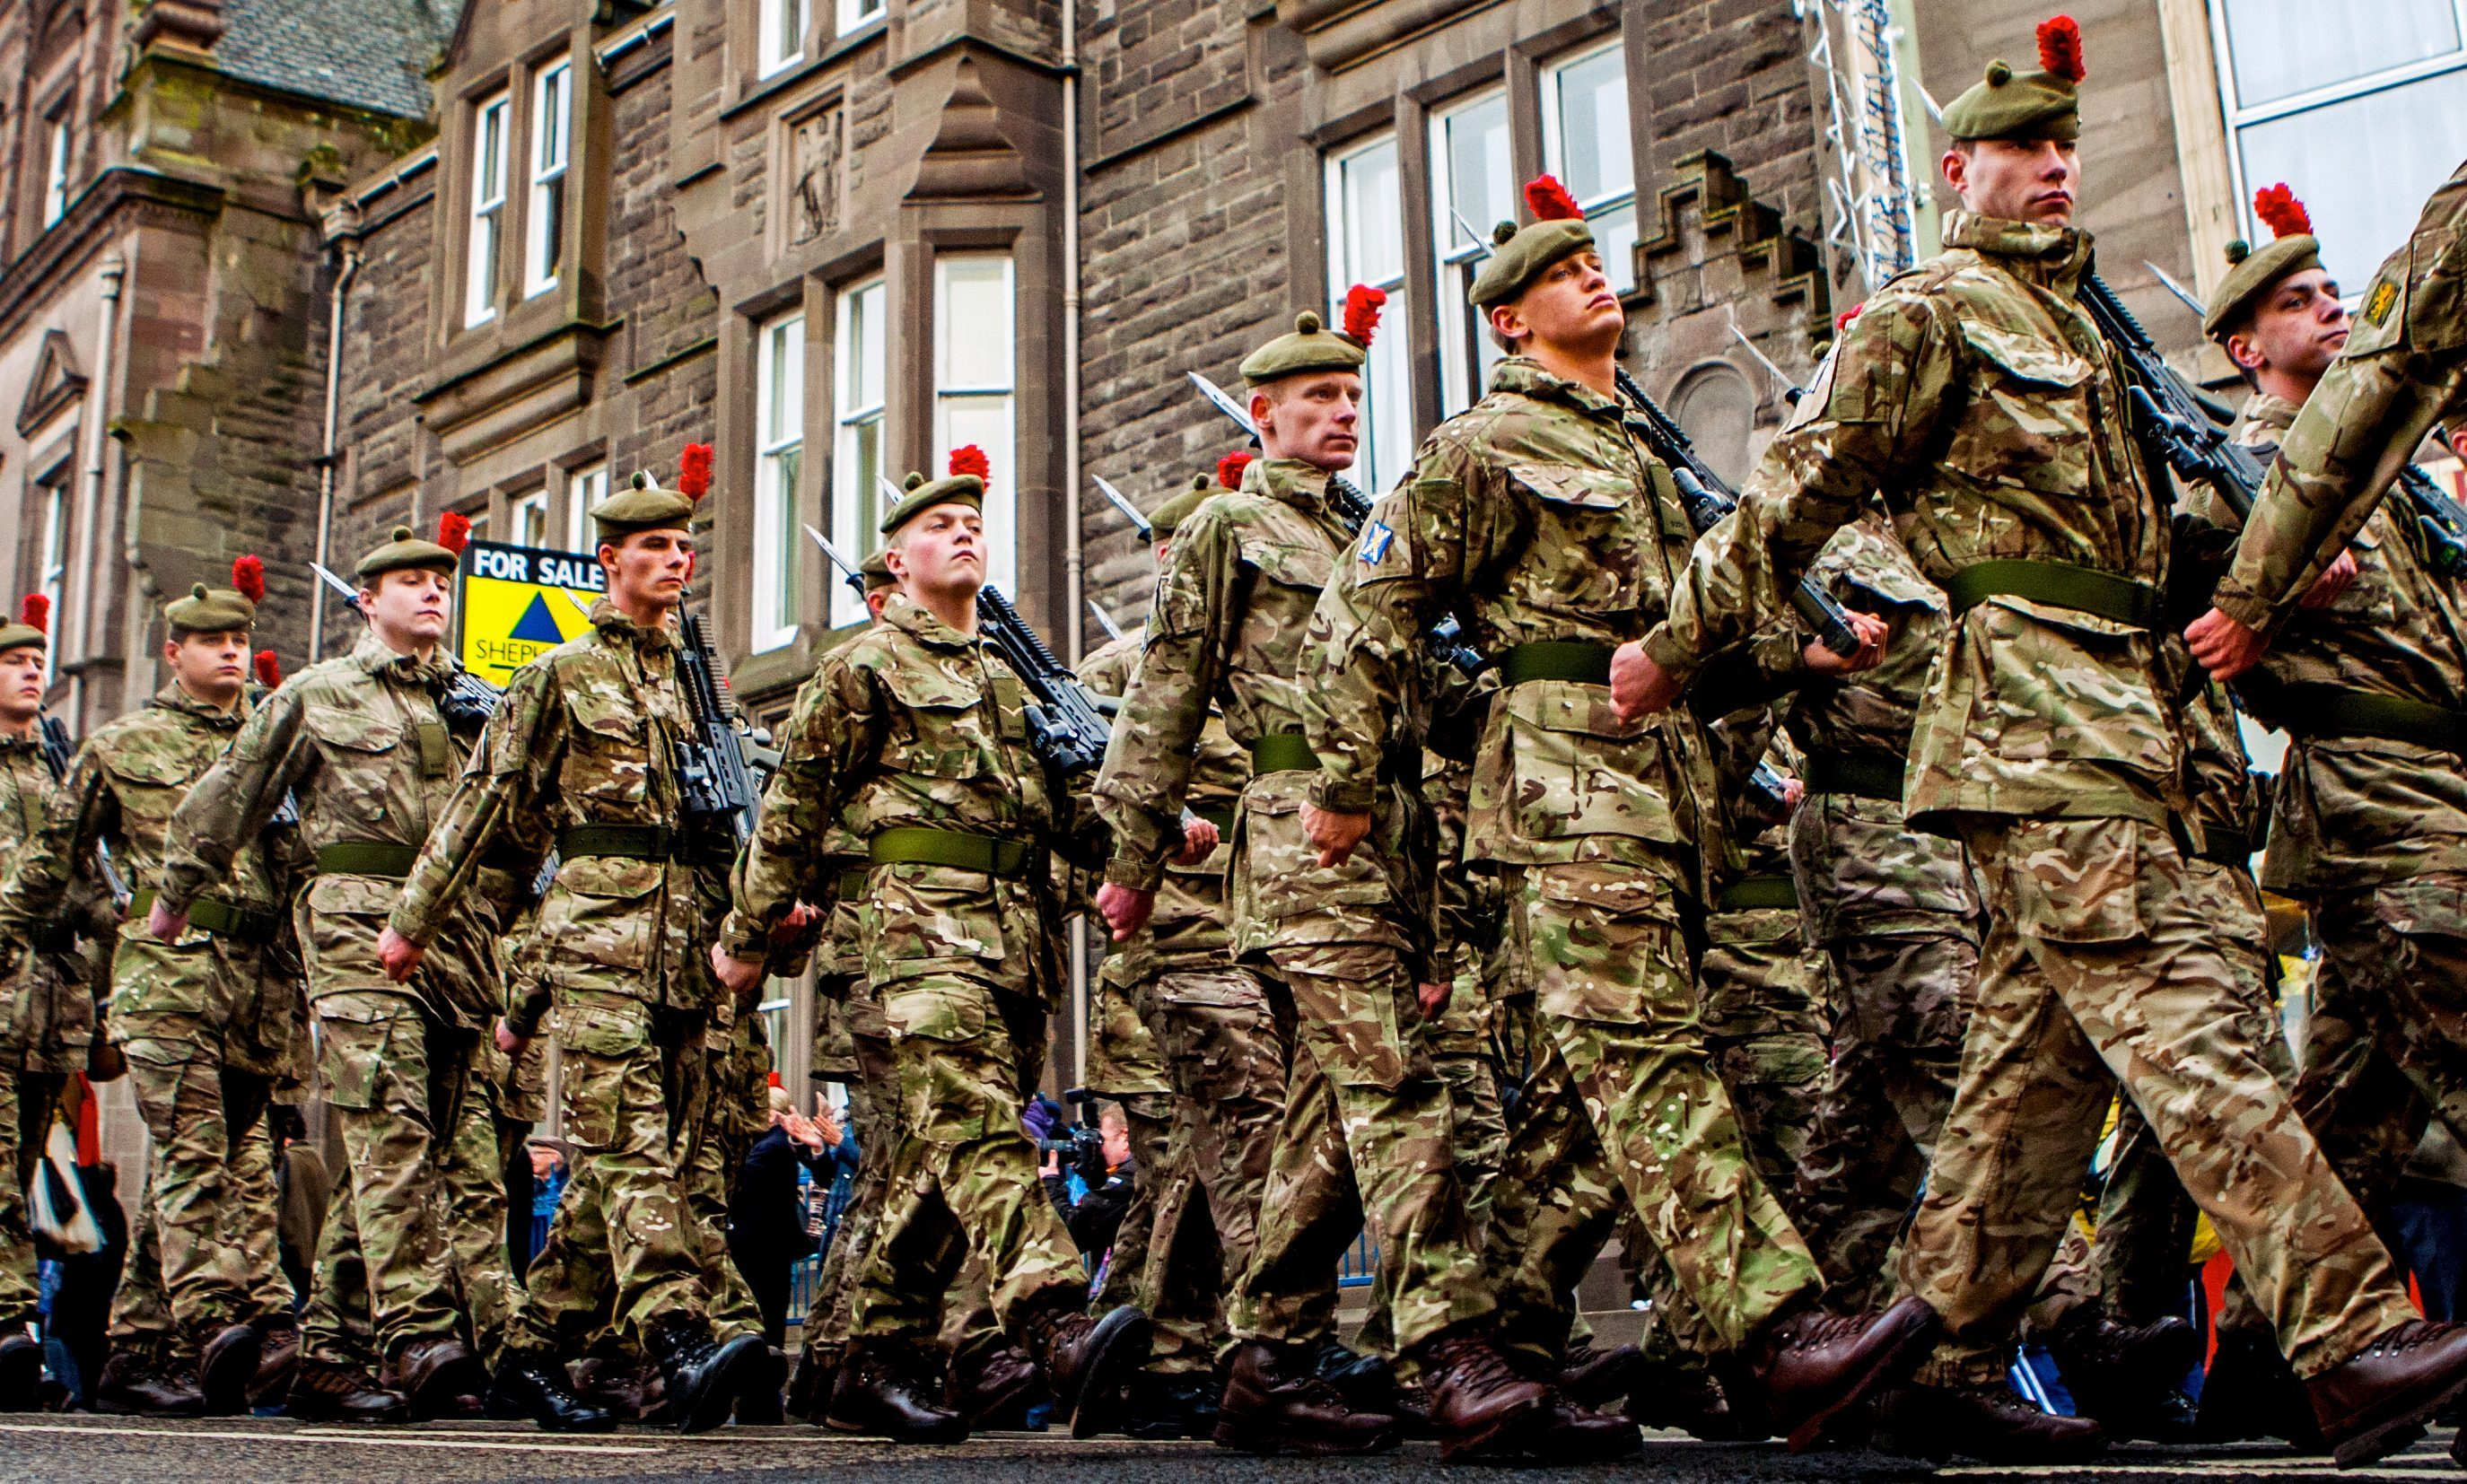 Freedom parade for The Black Watch 3rd Battalion The Royal Regiment of Scotland (3 Scots) in Forfar.